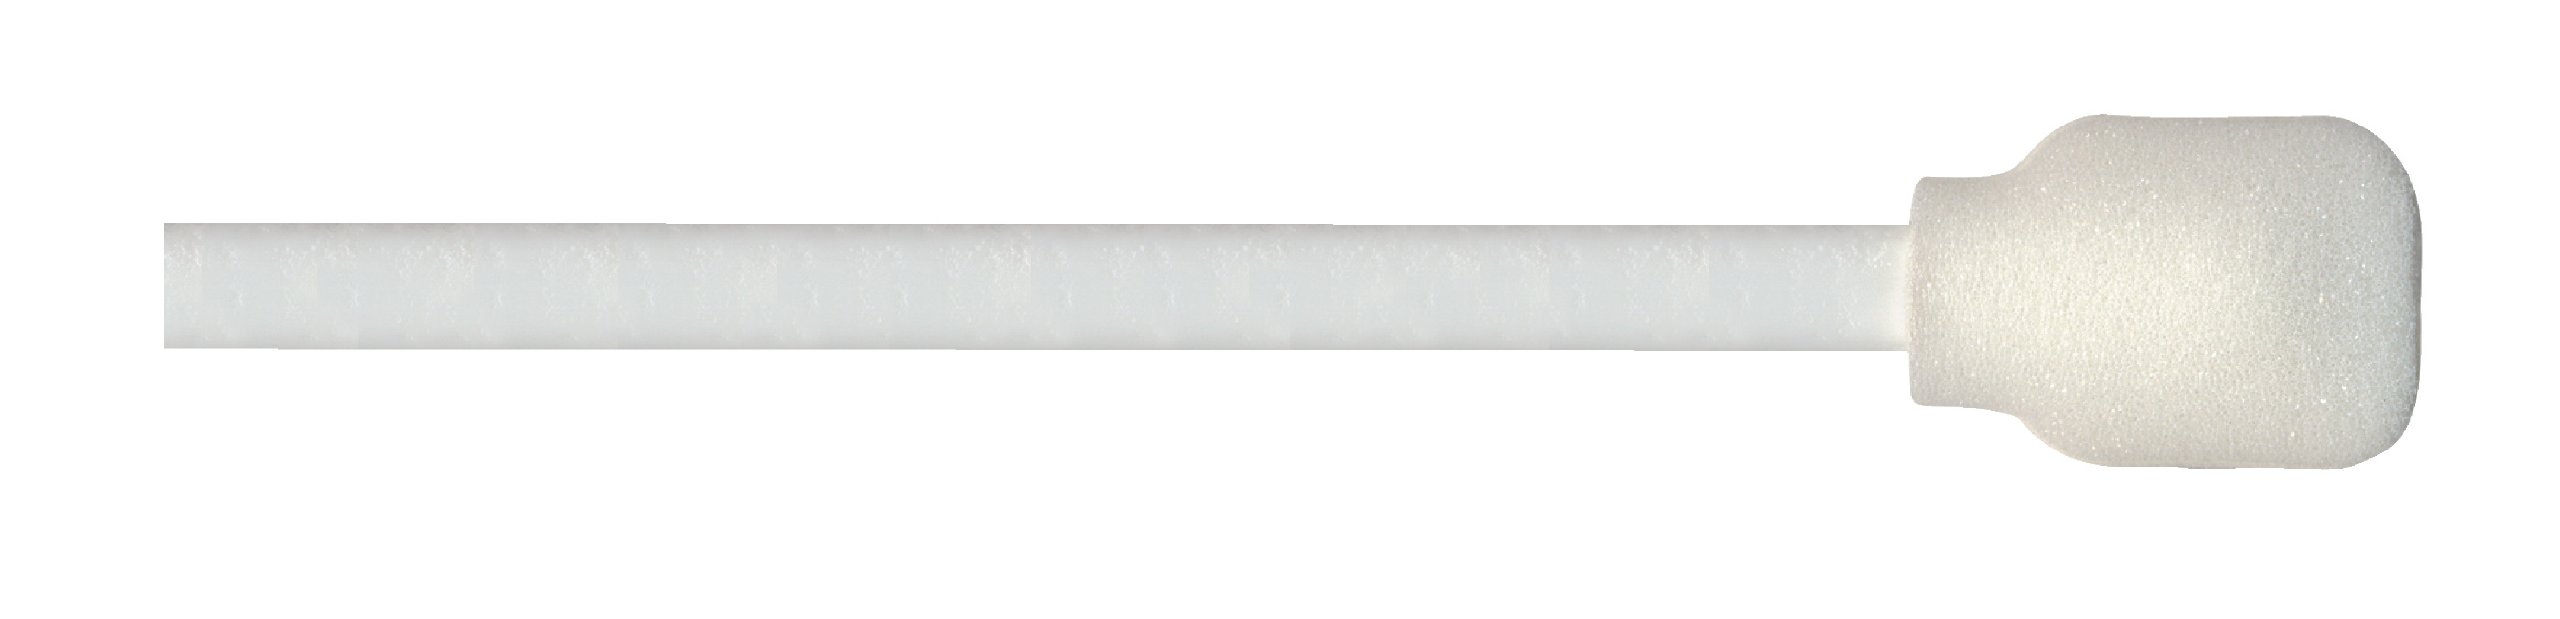 MG Chemicals Urethane Foam Head Swab with Sturdy Handle for Aggressive Cleaning, 100 PPI Porosity, 5'' Length